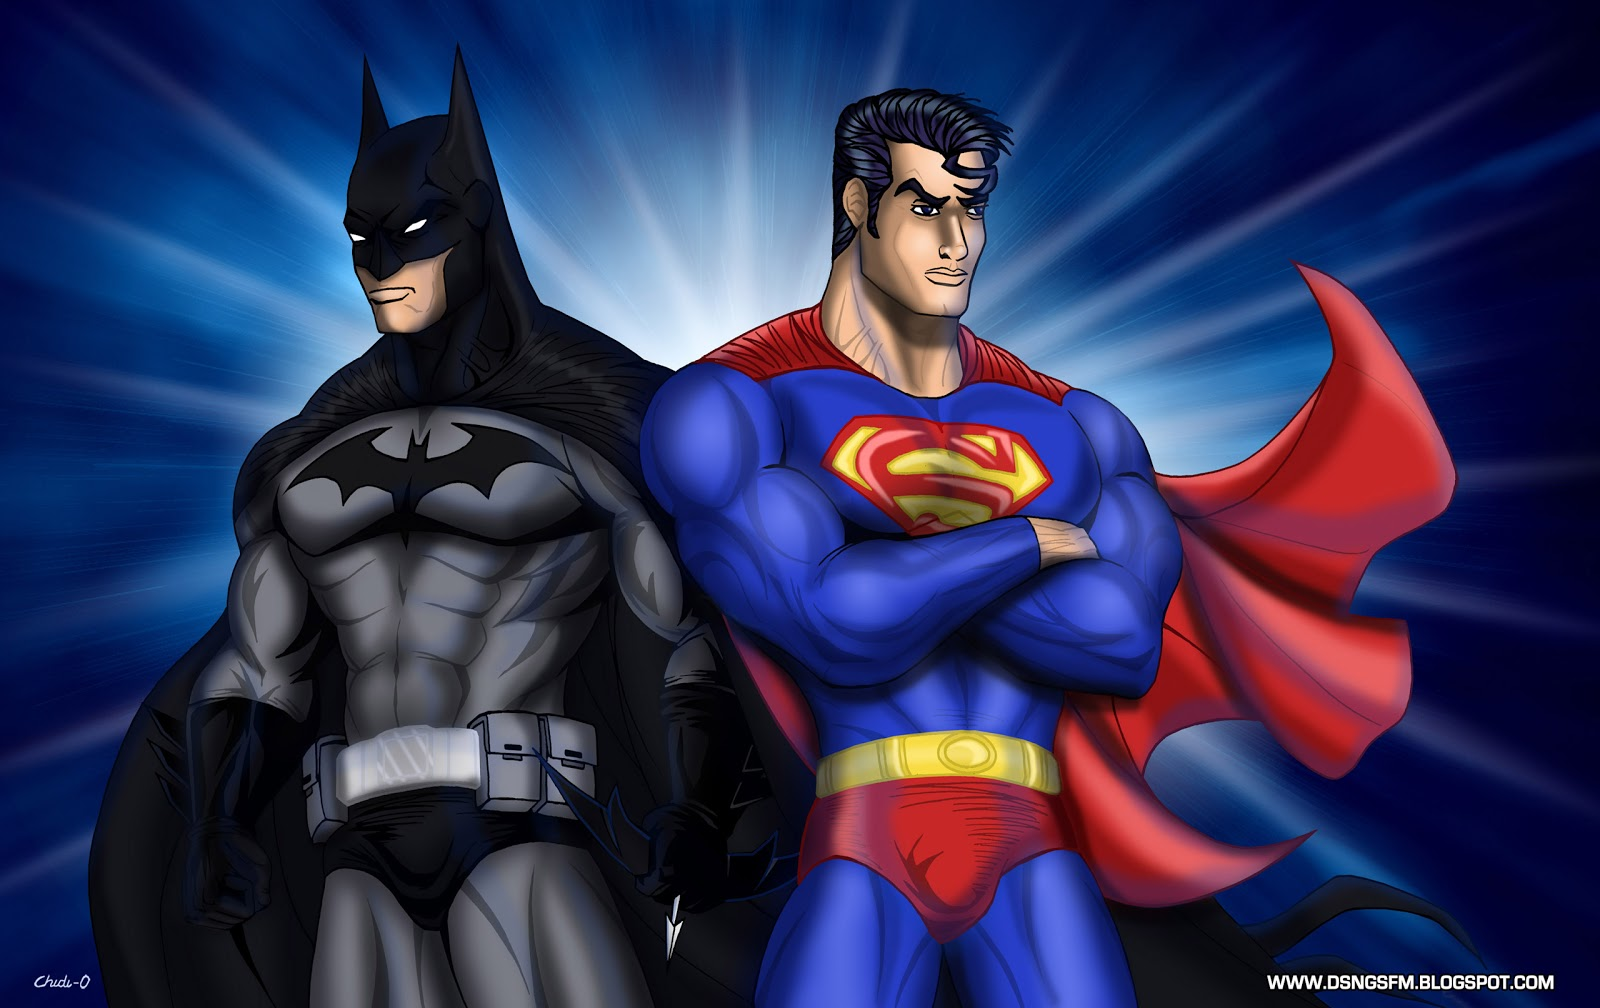 DSNG39;S SCI FI MEGAVERSE: SUPERMAN BATMAN POSTERS  PLUS NEW ART BY